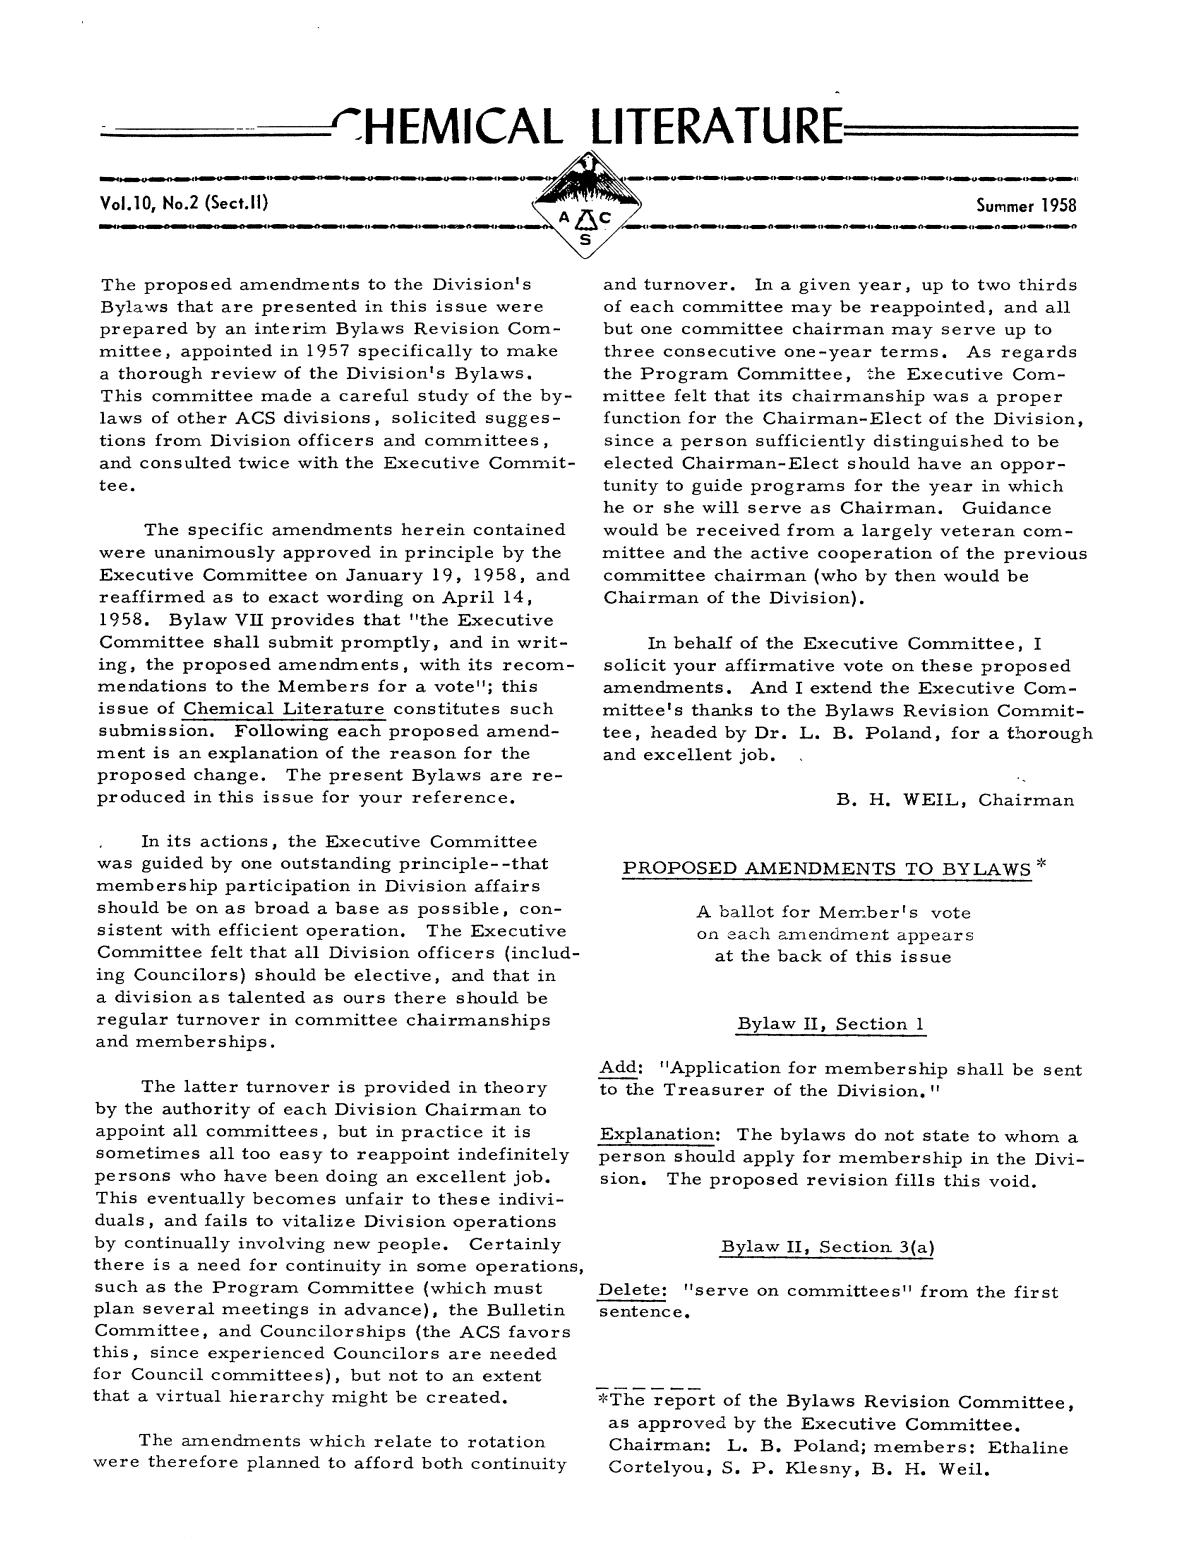 Chemical Literature, Volume 10, Number 2 (Sect. II), Summer 1958                                                                                                      1